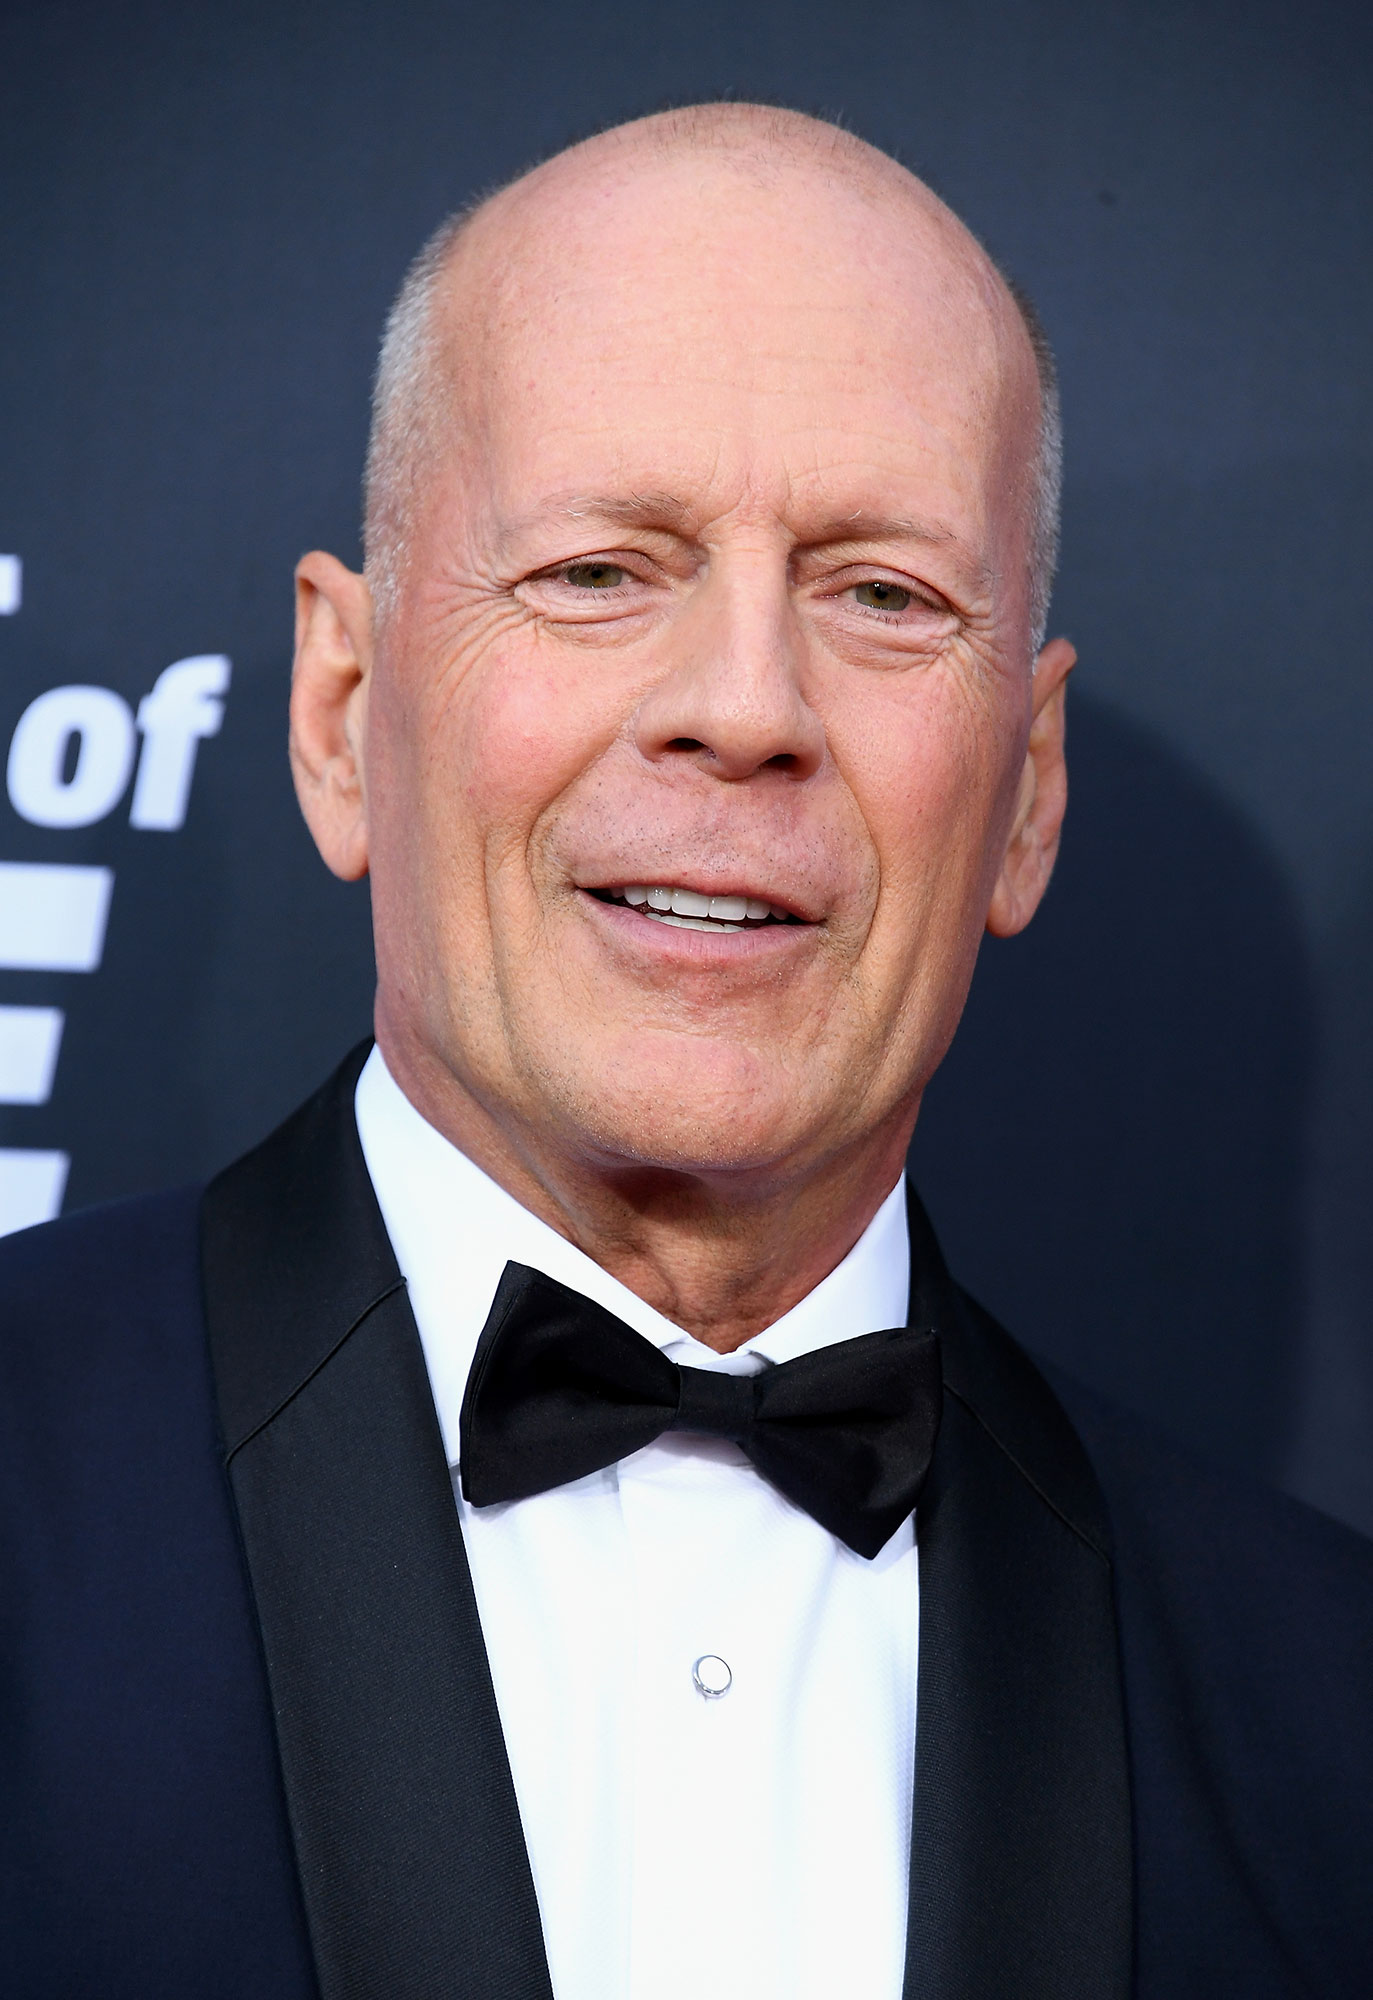 Bruce Willis - Stars Who Have Never Won Oscars - Moore's ex-husband Willis has also been unlucky in the Oscars department. The Sixth Sense actor is also sans a trophy or a nomination from the Academy